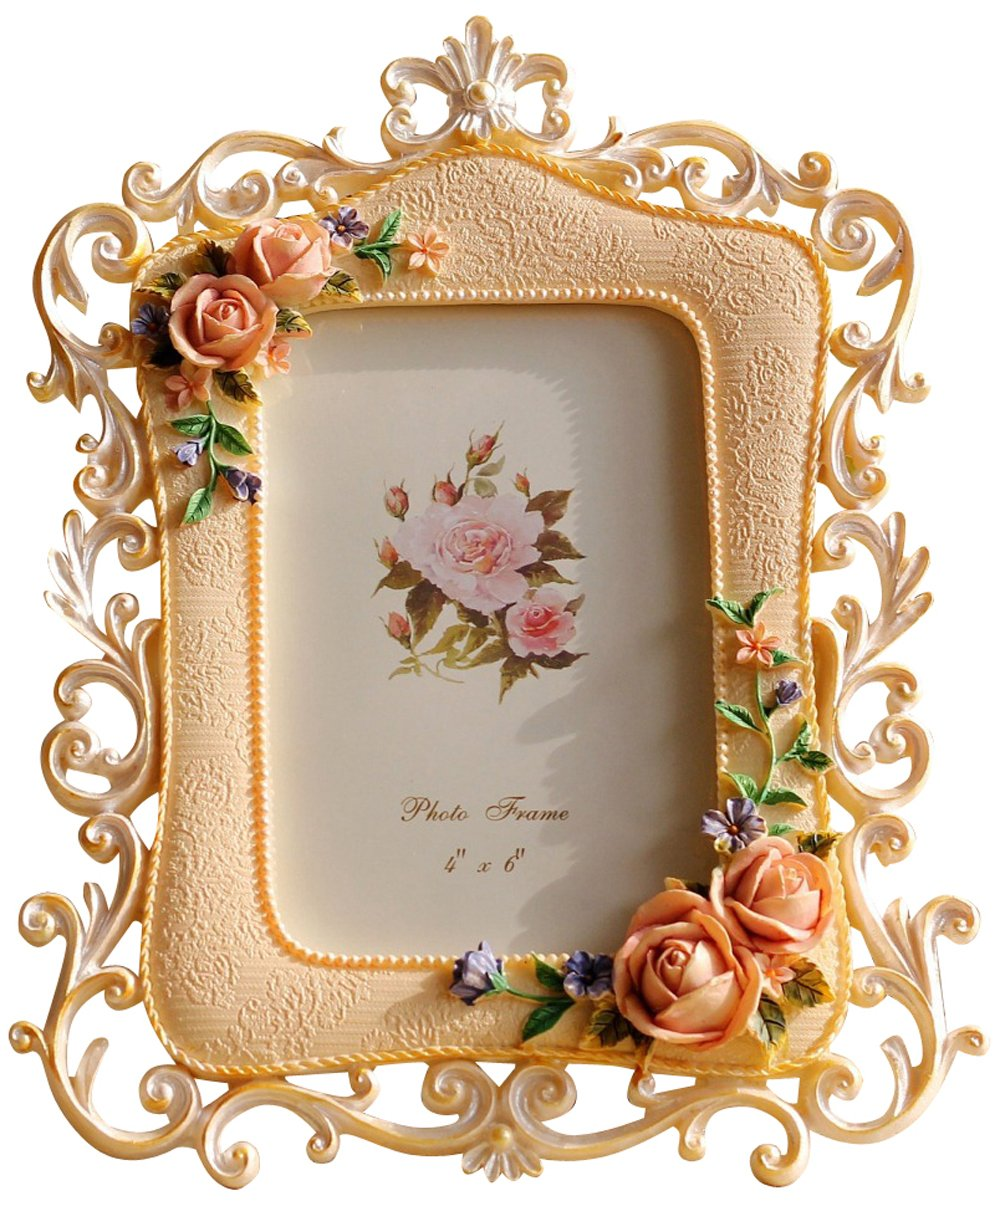 Amazon.com - Giftgarden 4 by 6 Picture Frames Rose Decor Rustic Frame 4x6  Photos for Wedding Gifts, Valentines Gifts, Gift for Mom -